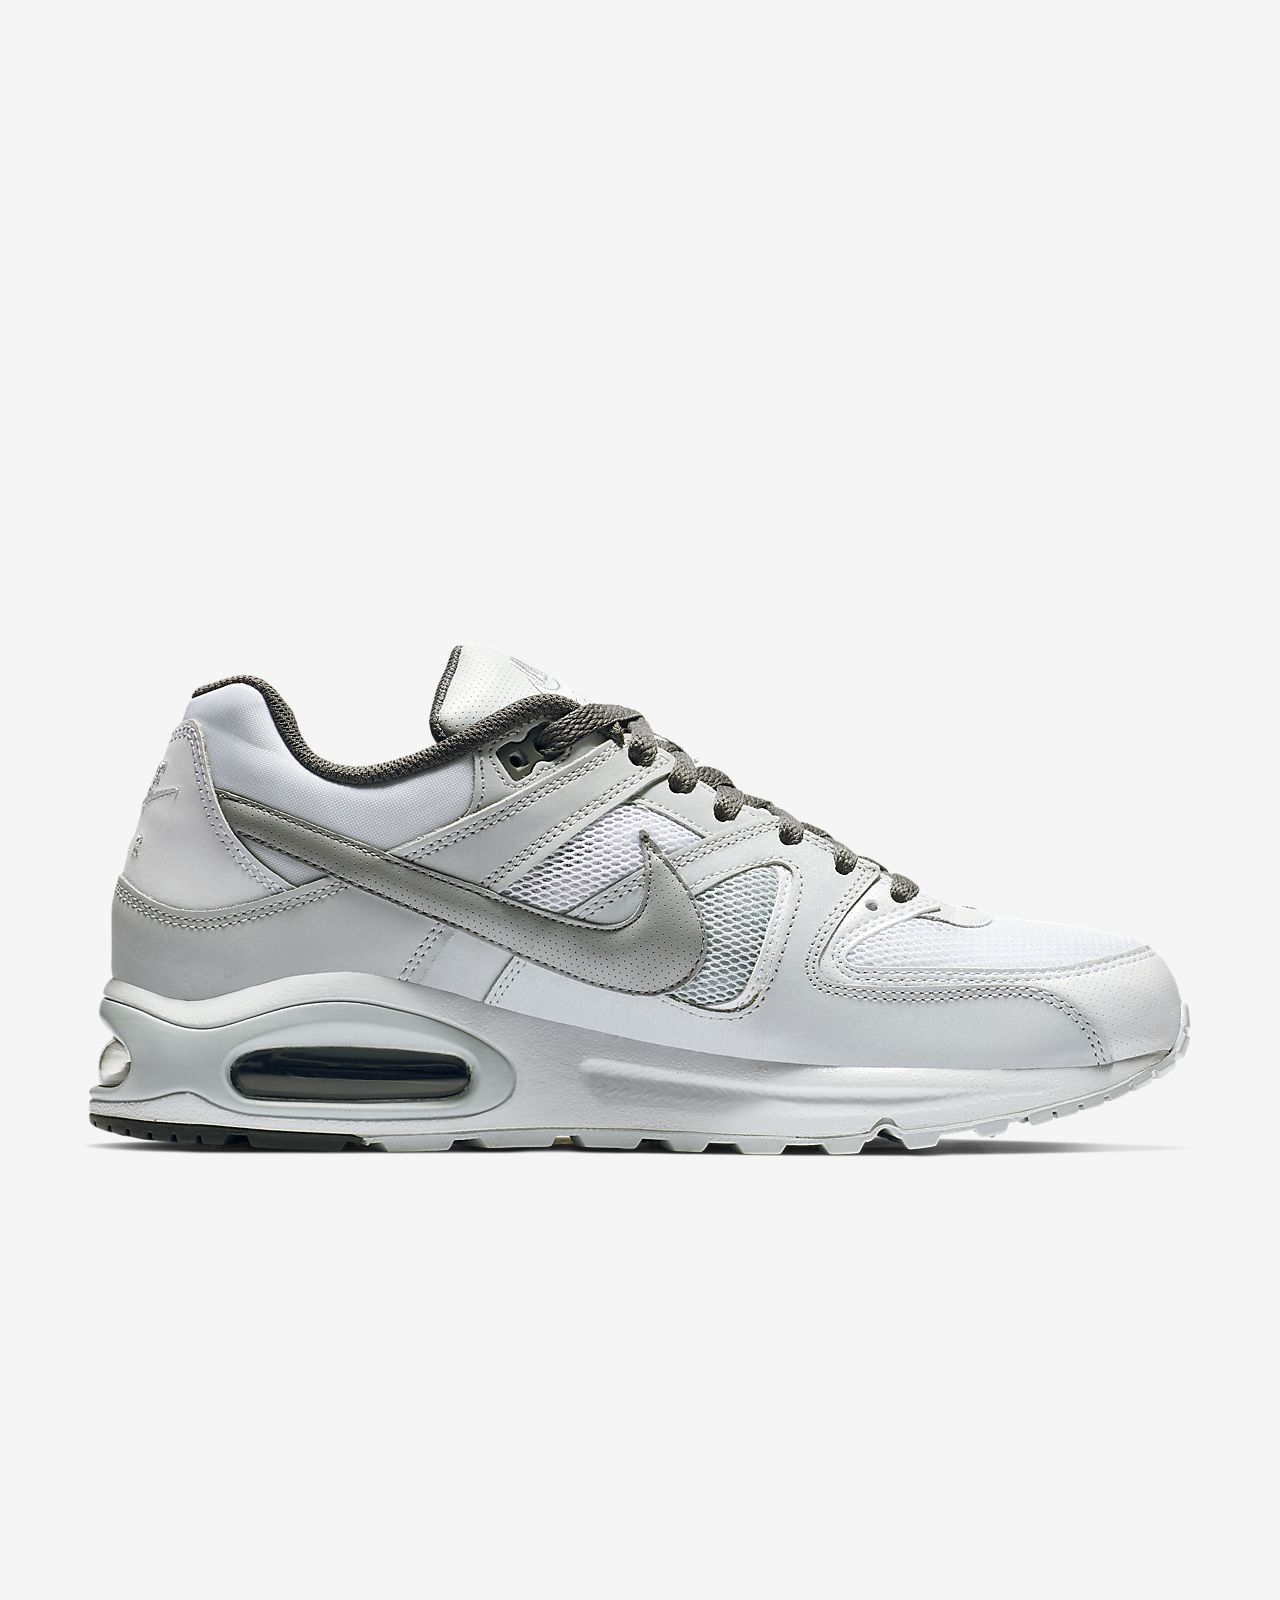 outlet store 9225d 86d29 ... Nike Air Max Command – Chaussure pour Homme